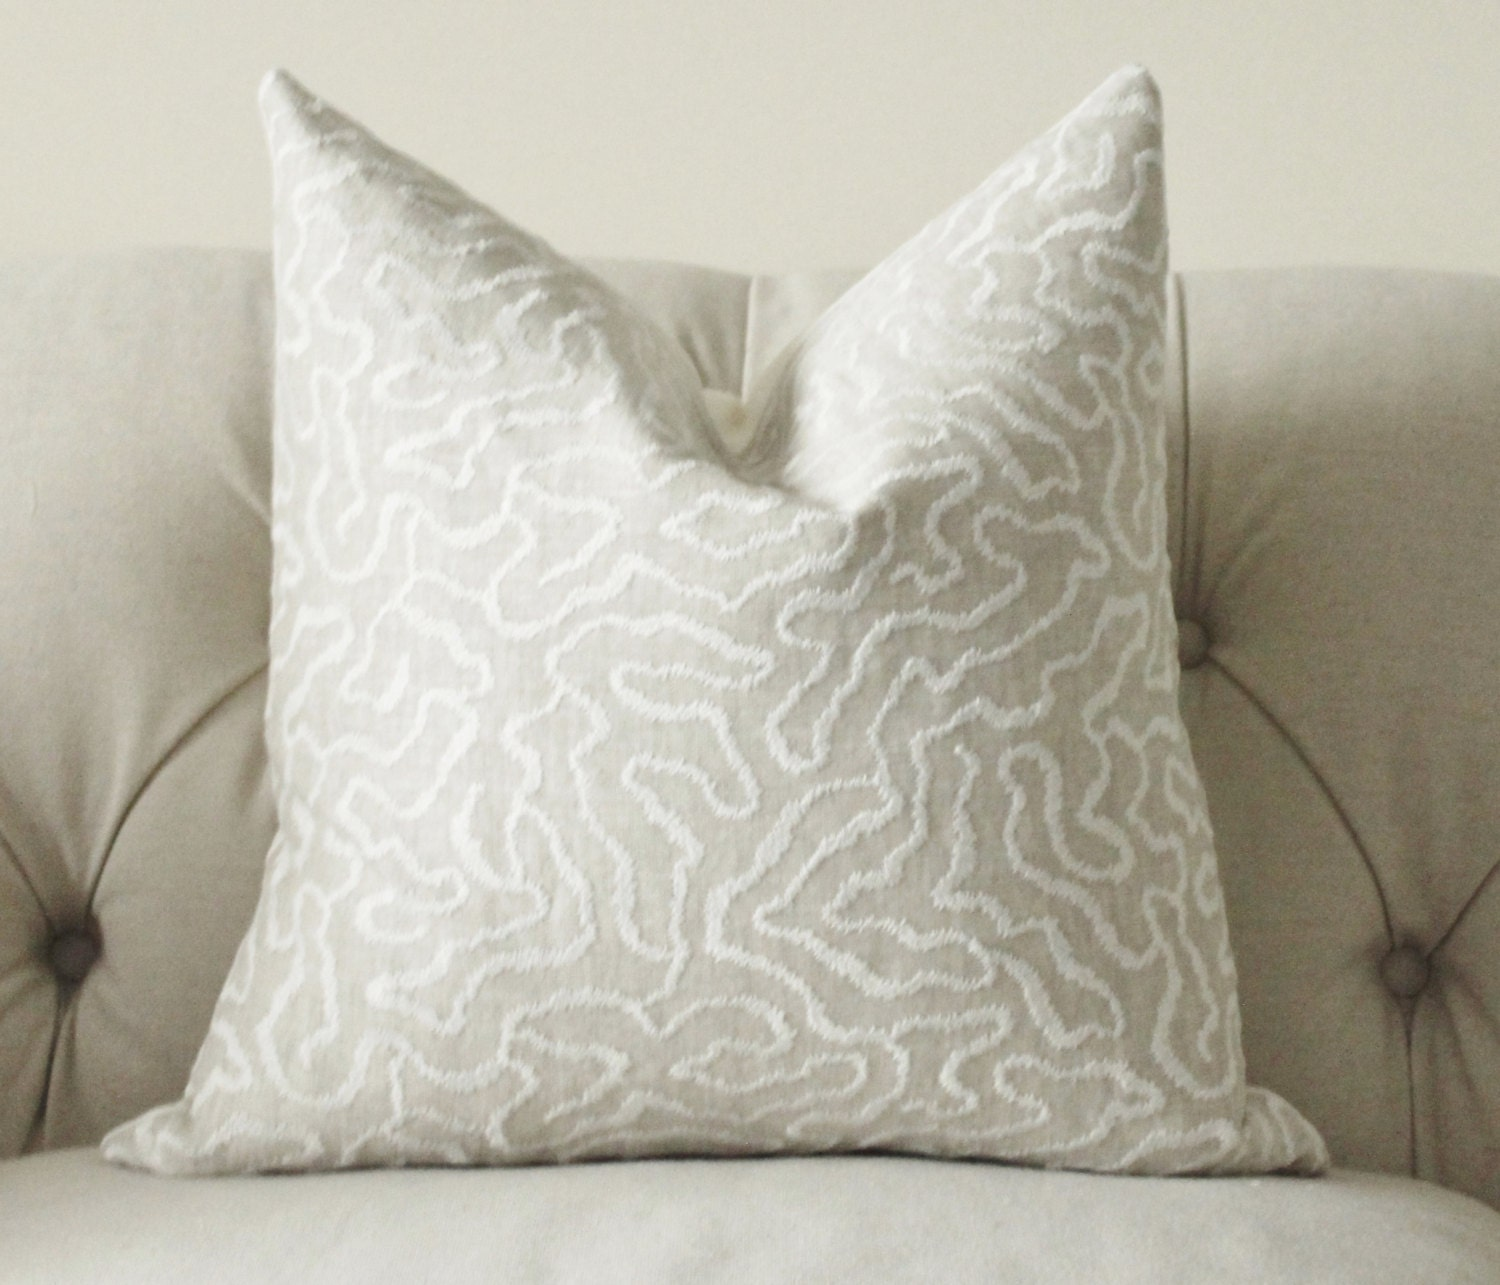 Greige Pillow Grey Beige Off White Geometric by MotifPillows